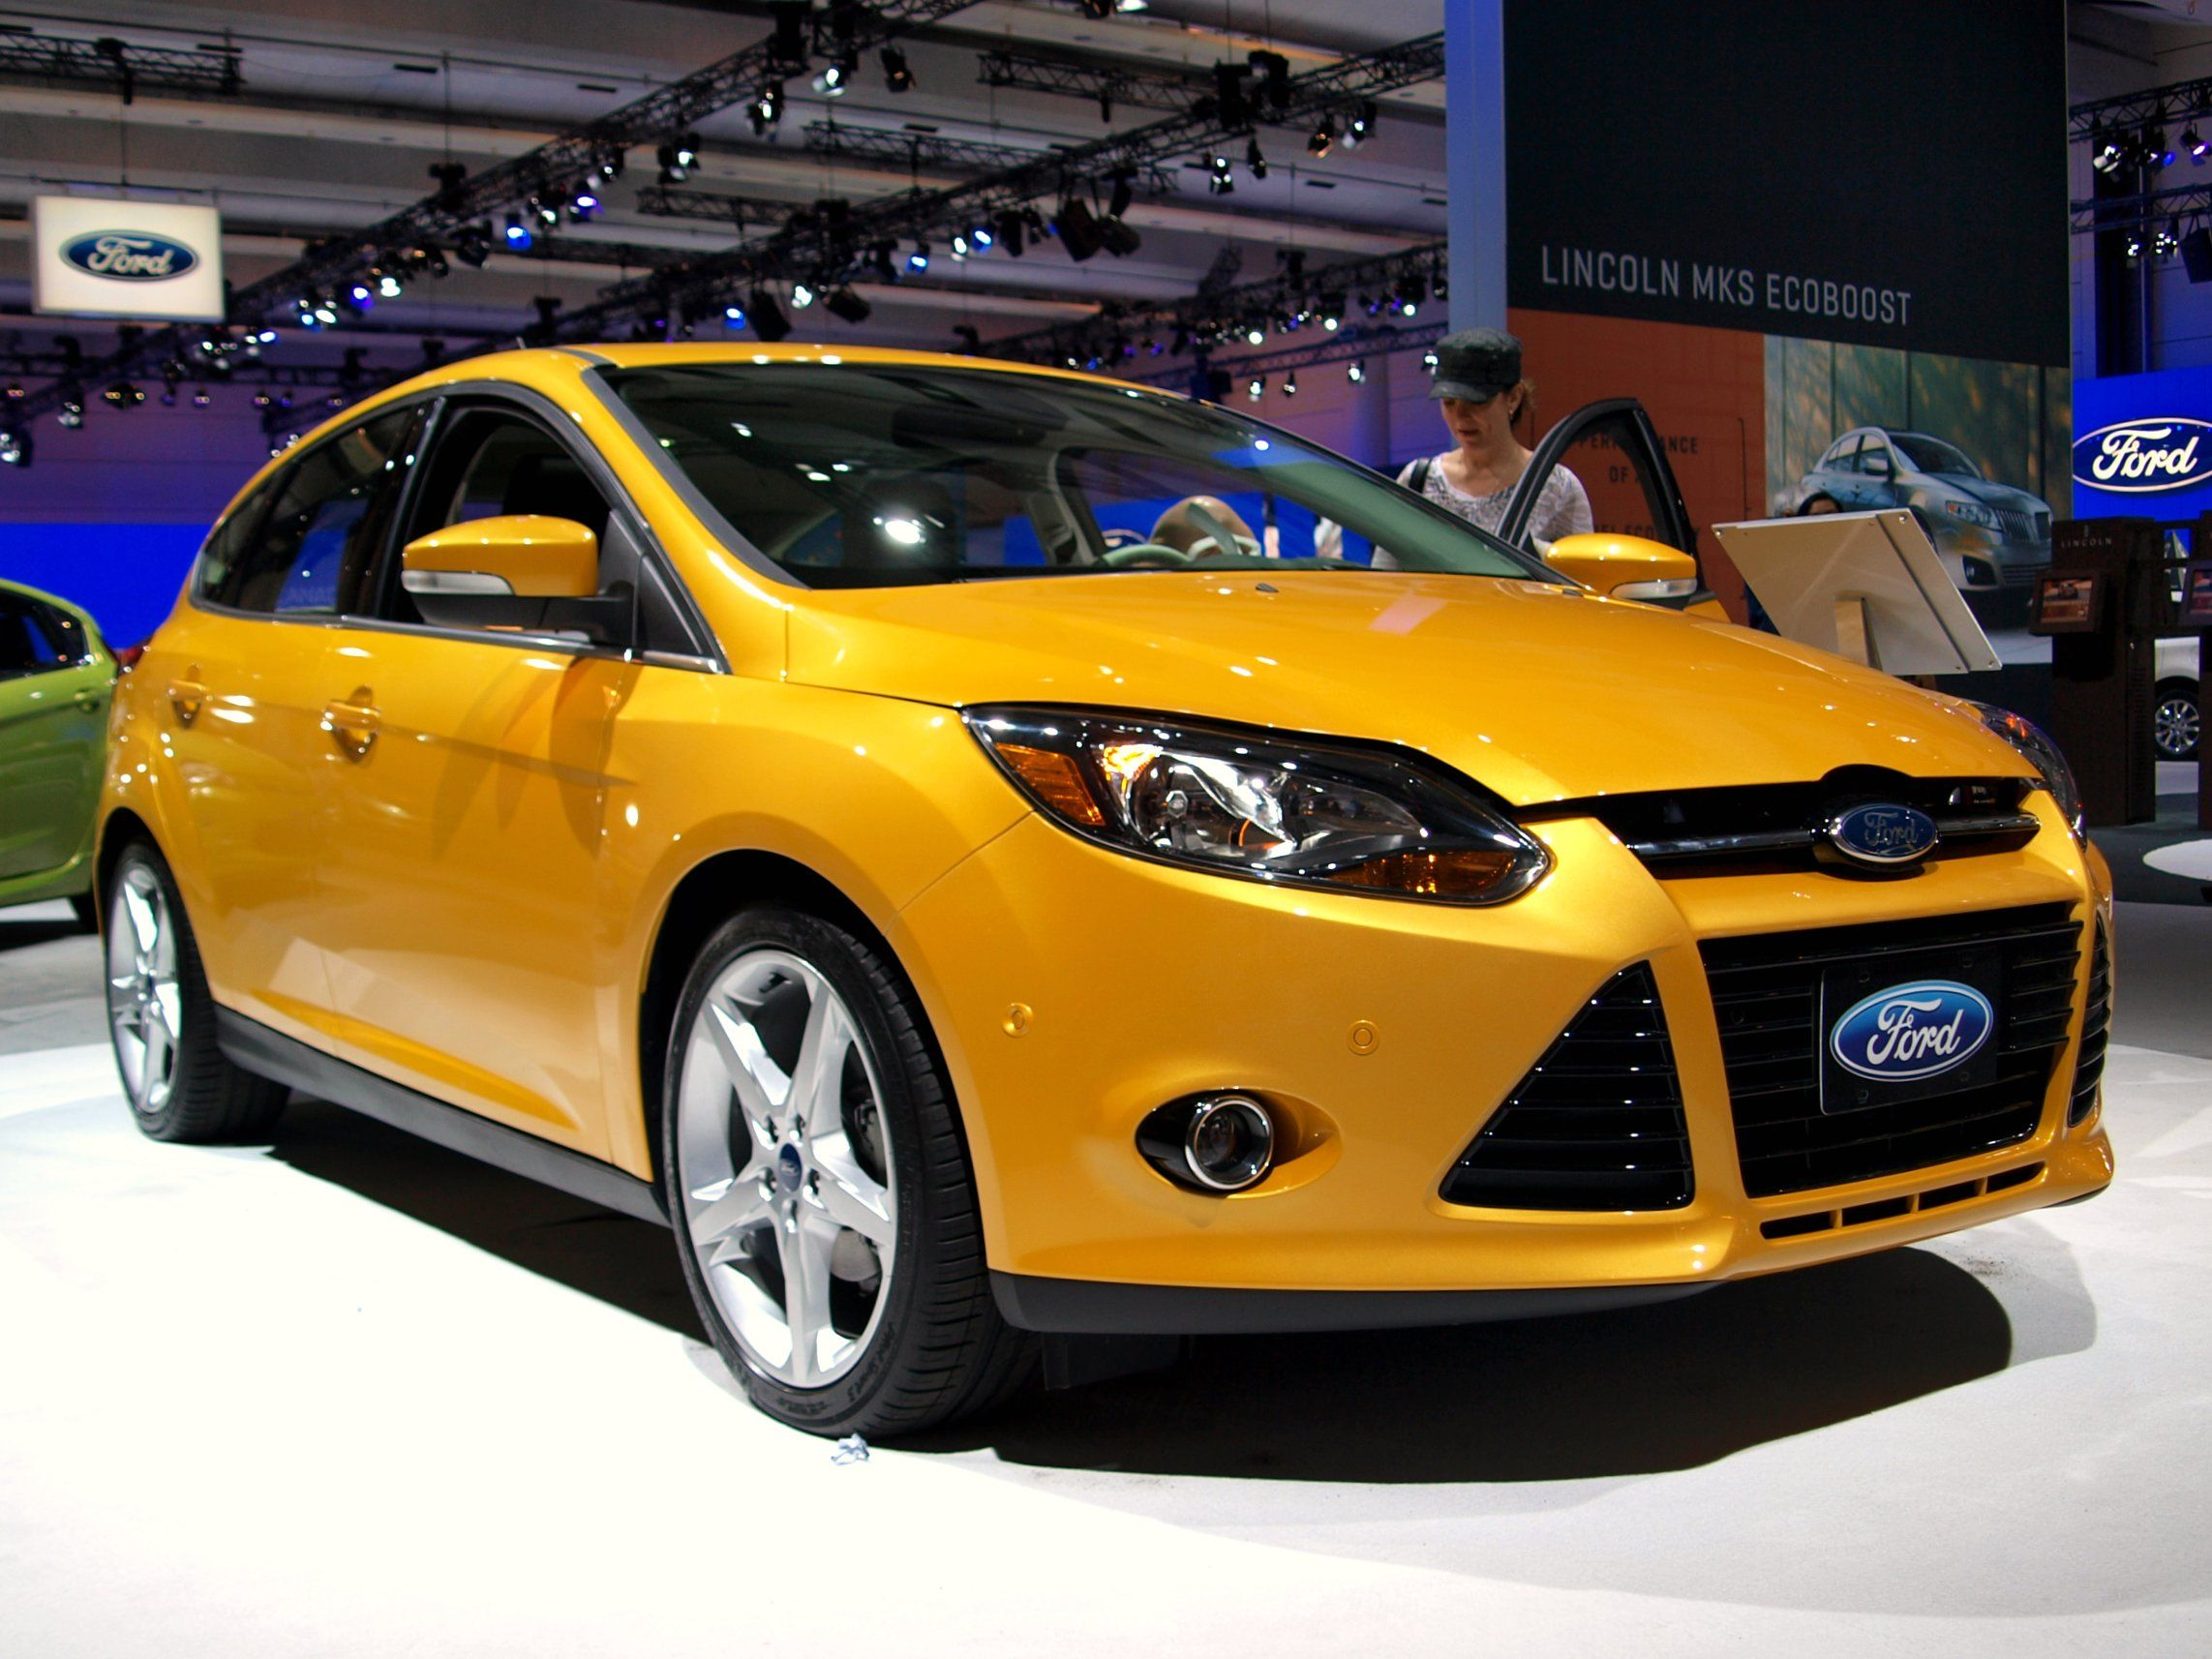 A Ford Focus in a show room